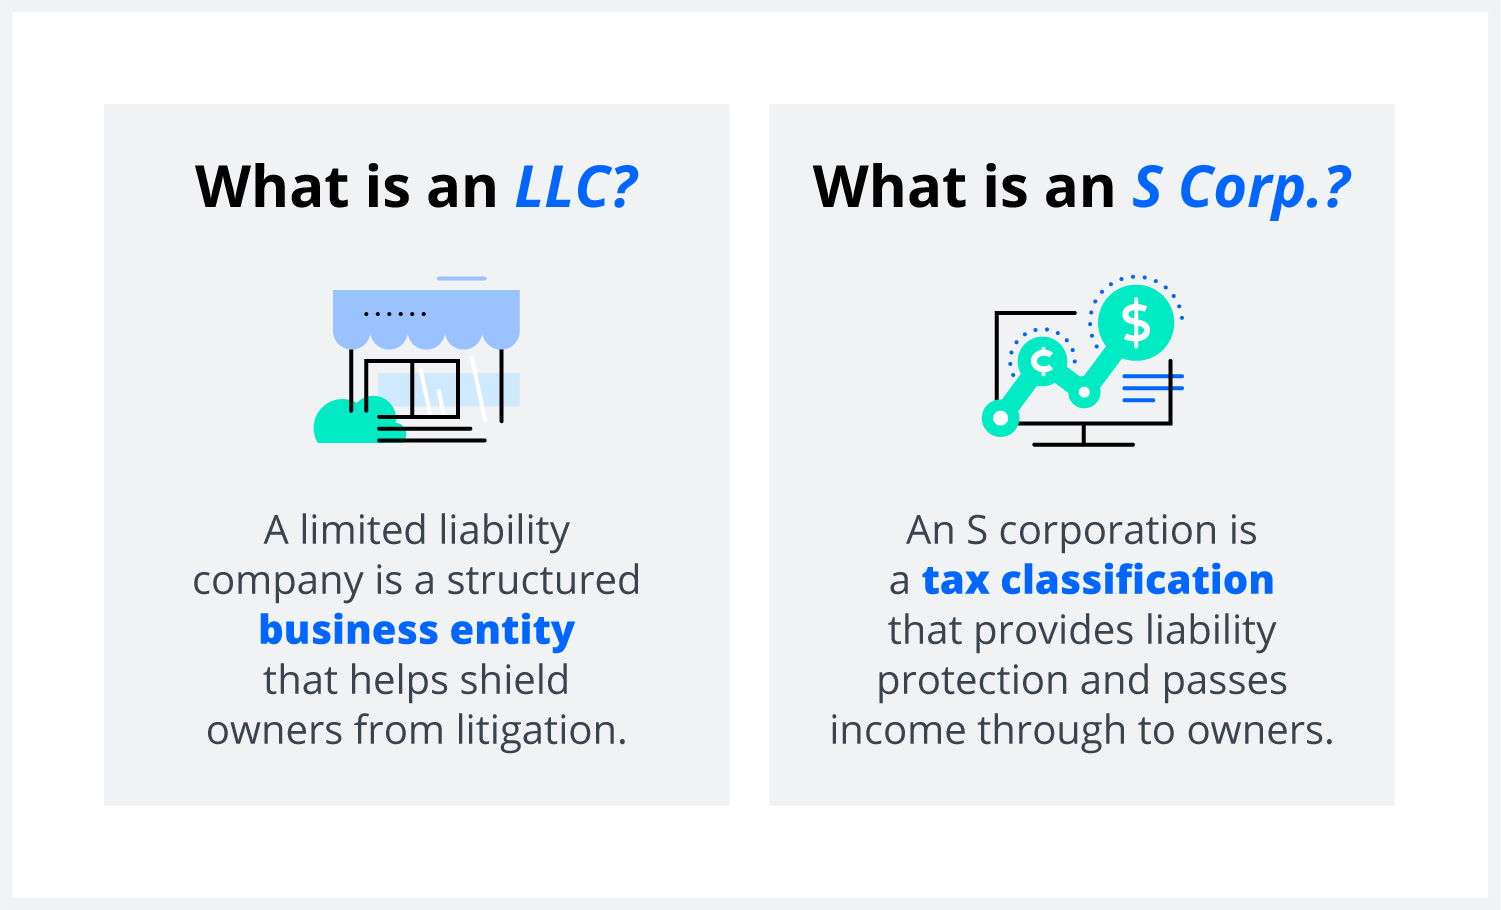 The difference between an LLC and S corporation